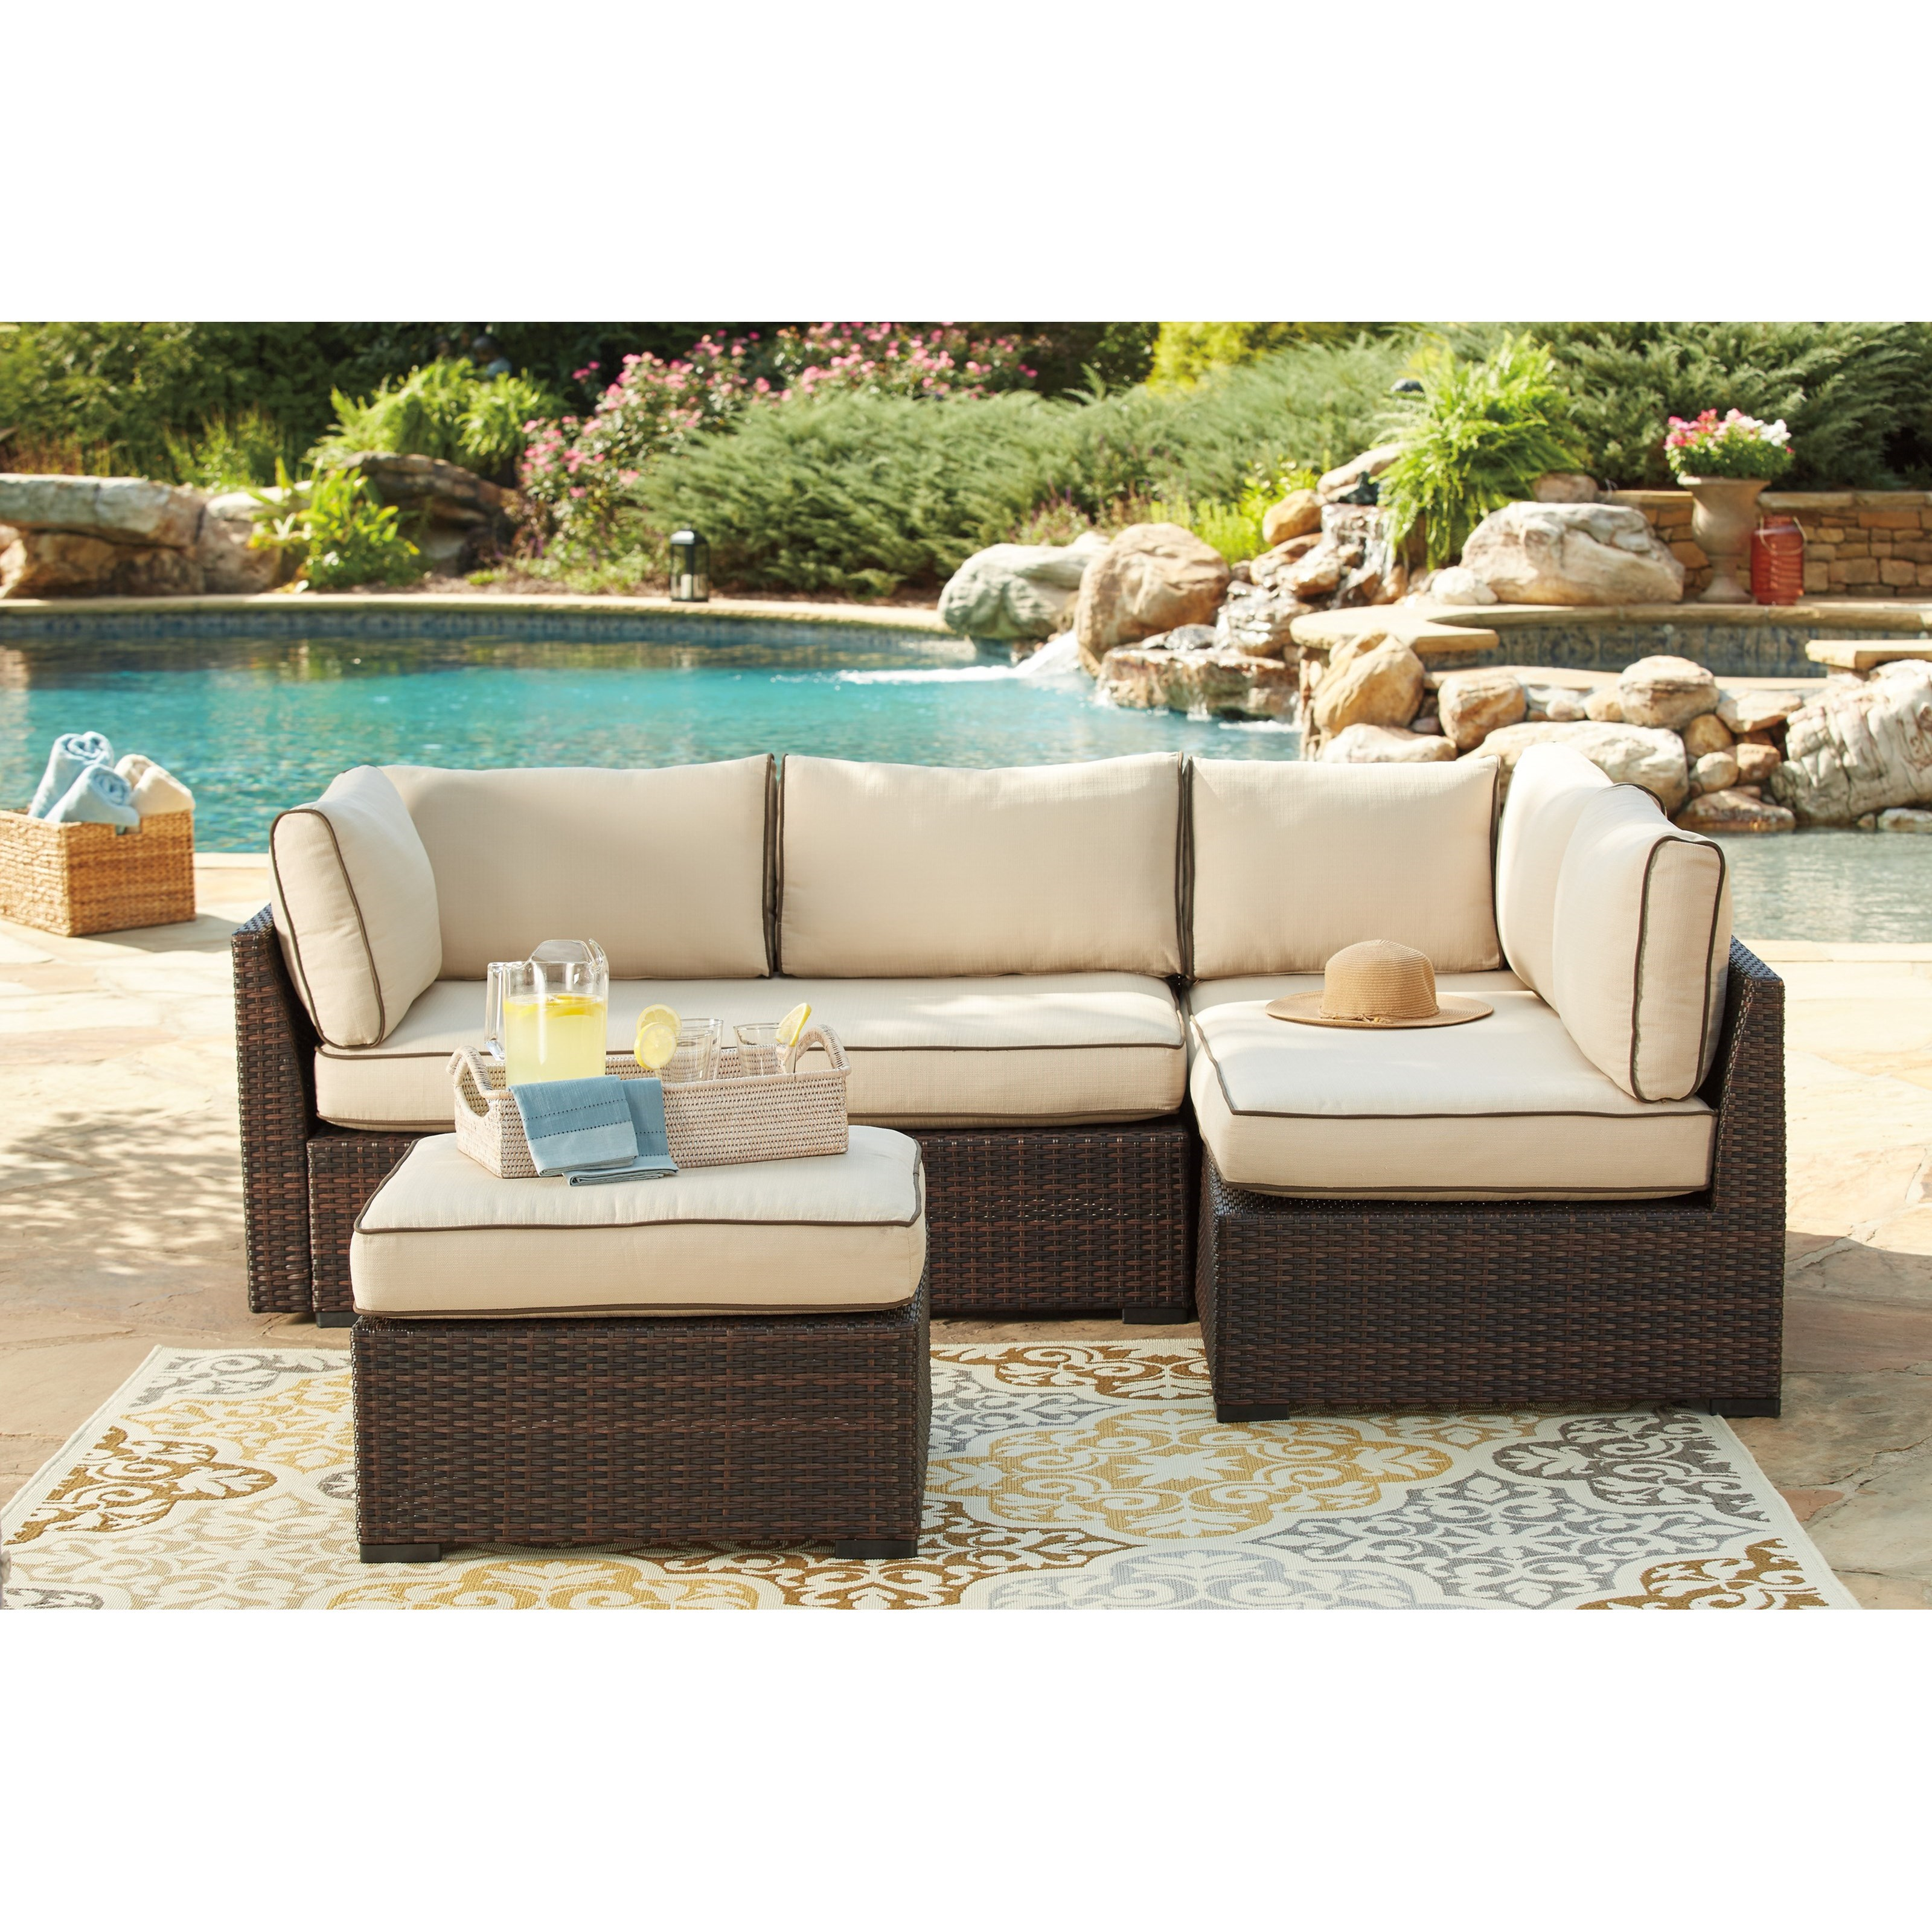 ashley signature design loughran p300 070 outdoor sectional set with cocktail table dunk. Black Bedroom Furniture Sets. Home Design Ideas